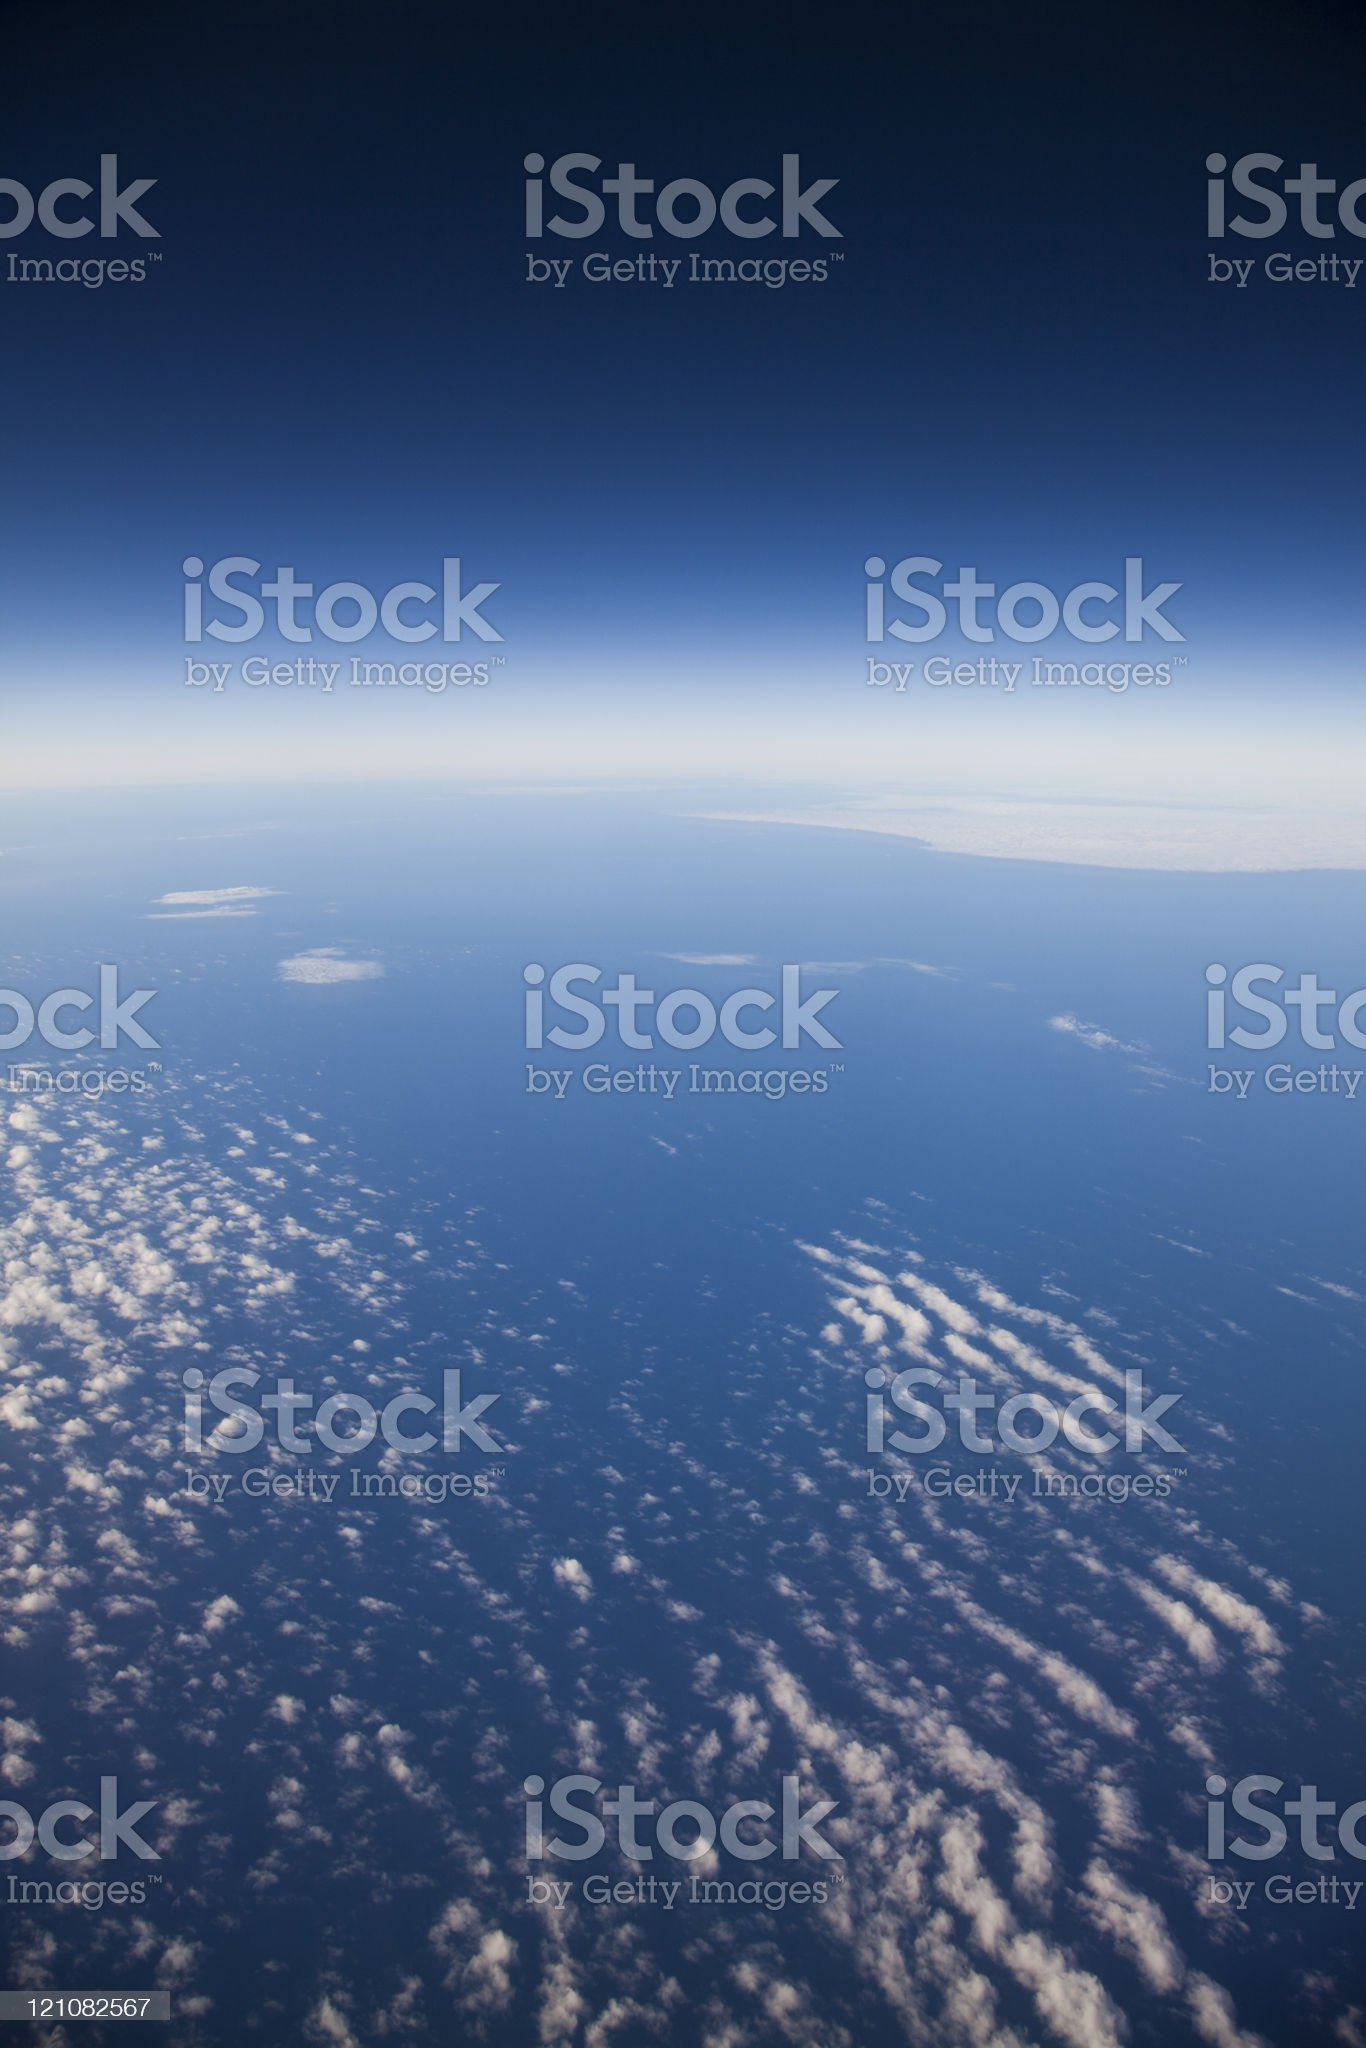 Earthscape royalty-free stock photo